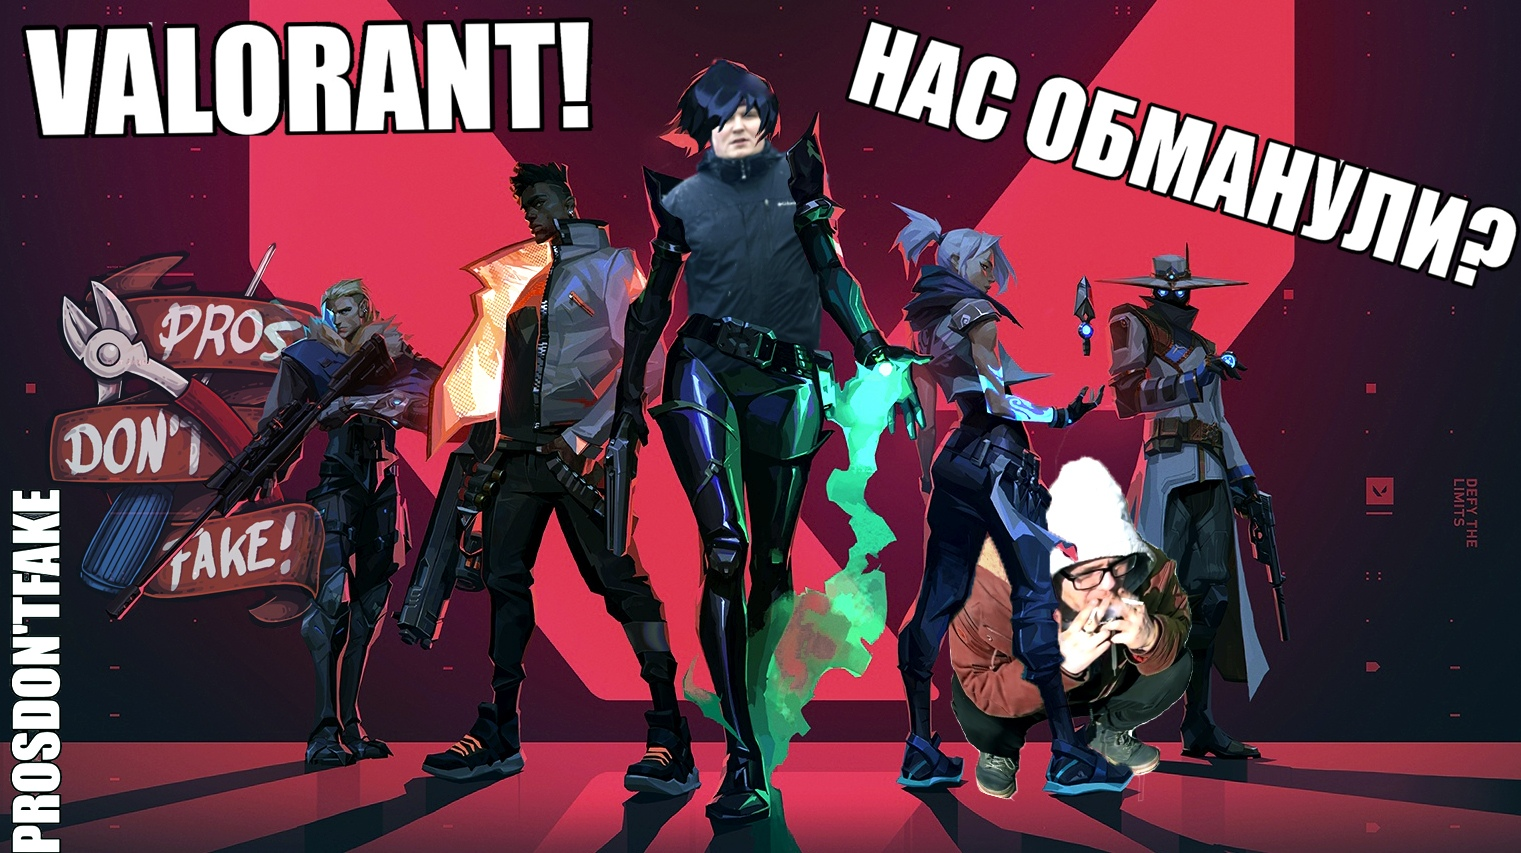 Блоги, Counter-Strike: Global Offensive, Шутеры, Valorant